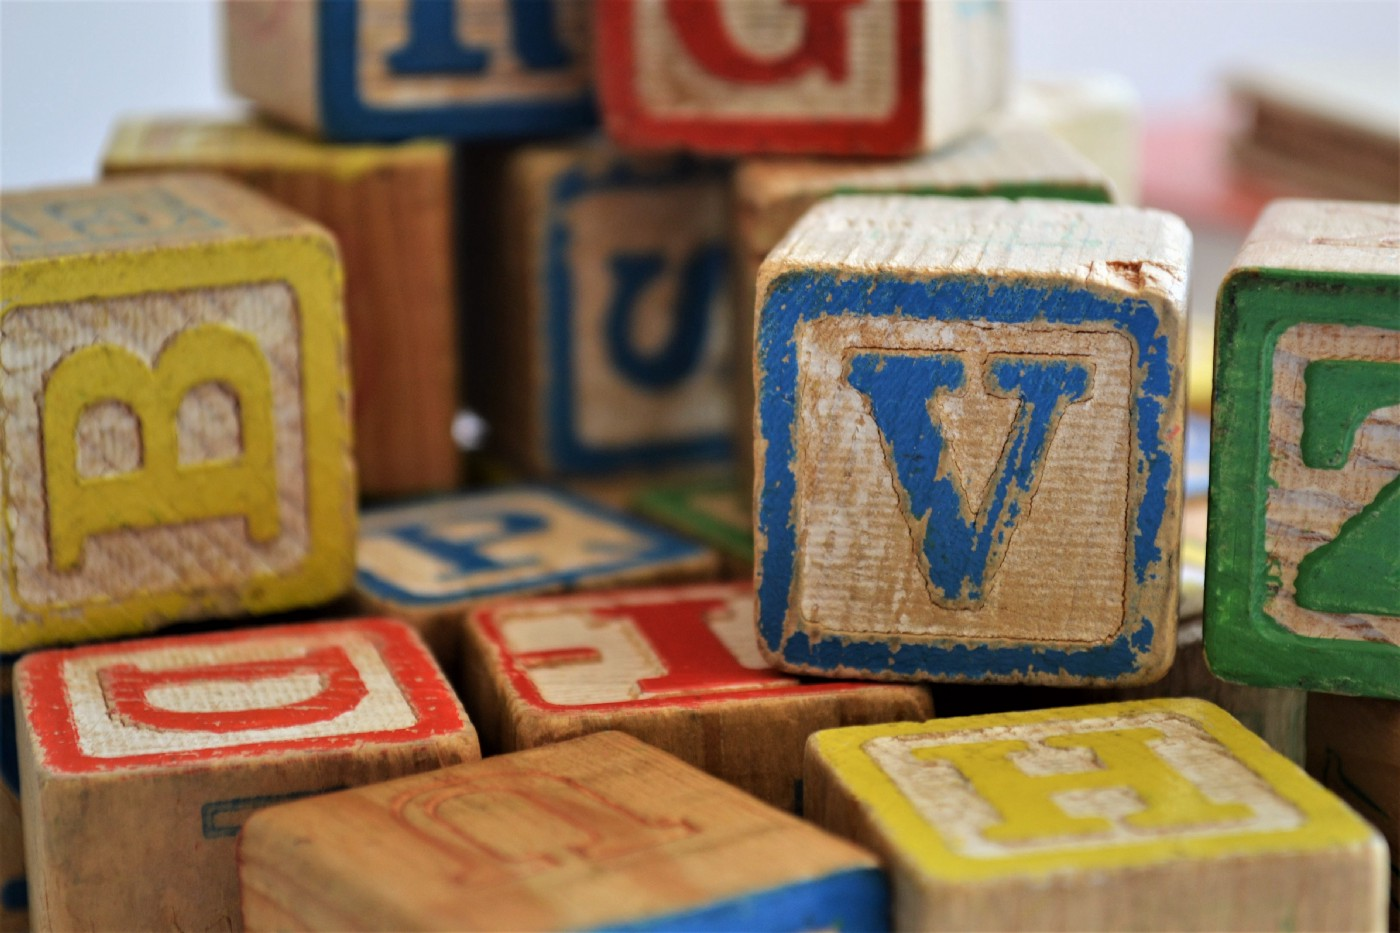 Colorful toy blocks with letters